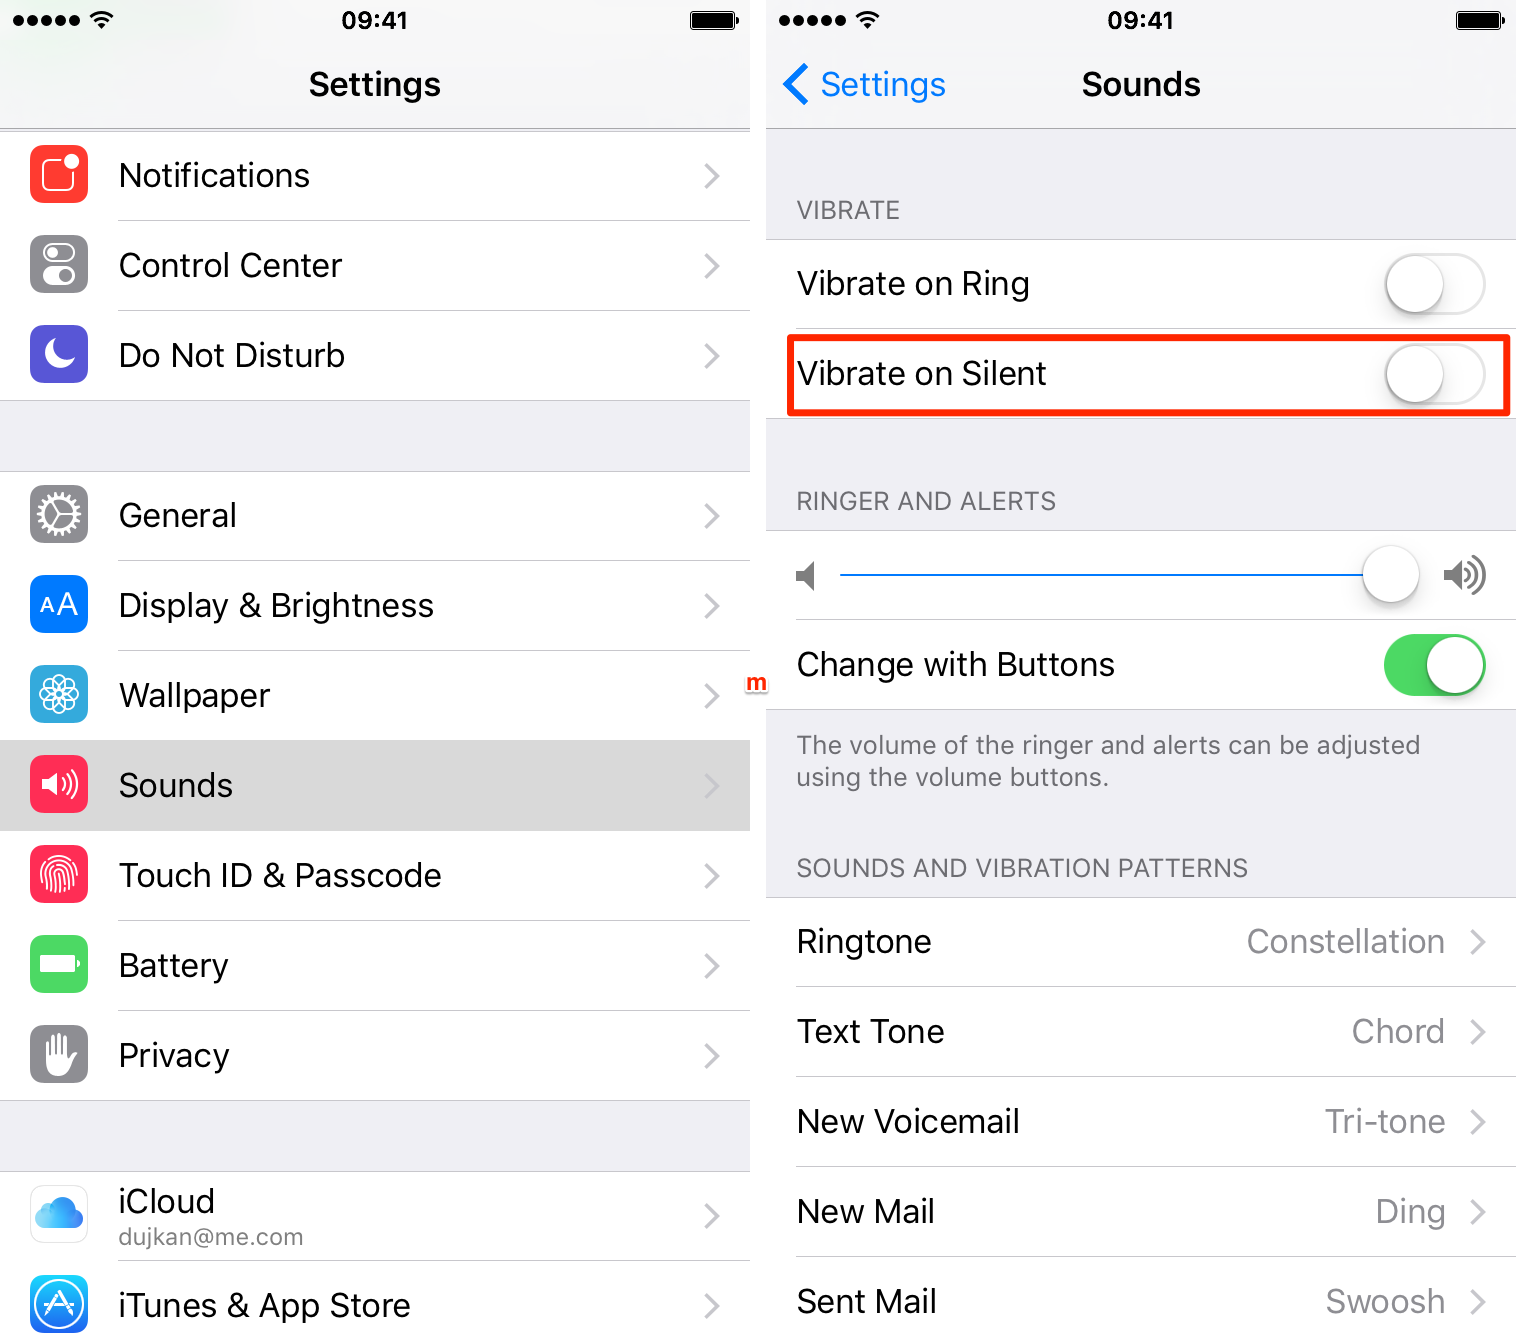 iOS 9 Settings Sounds Vibrate on Silent